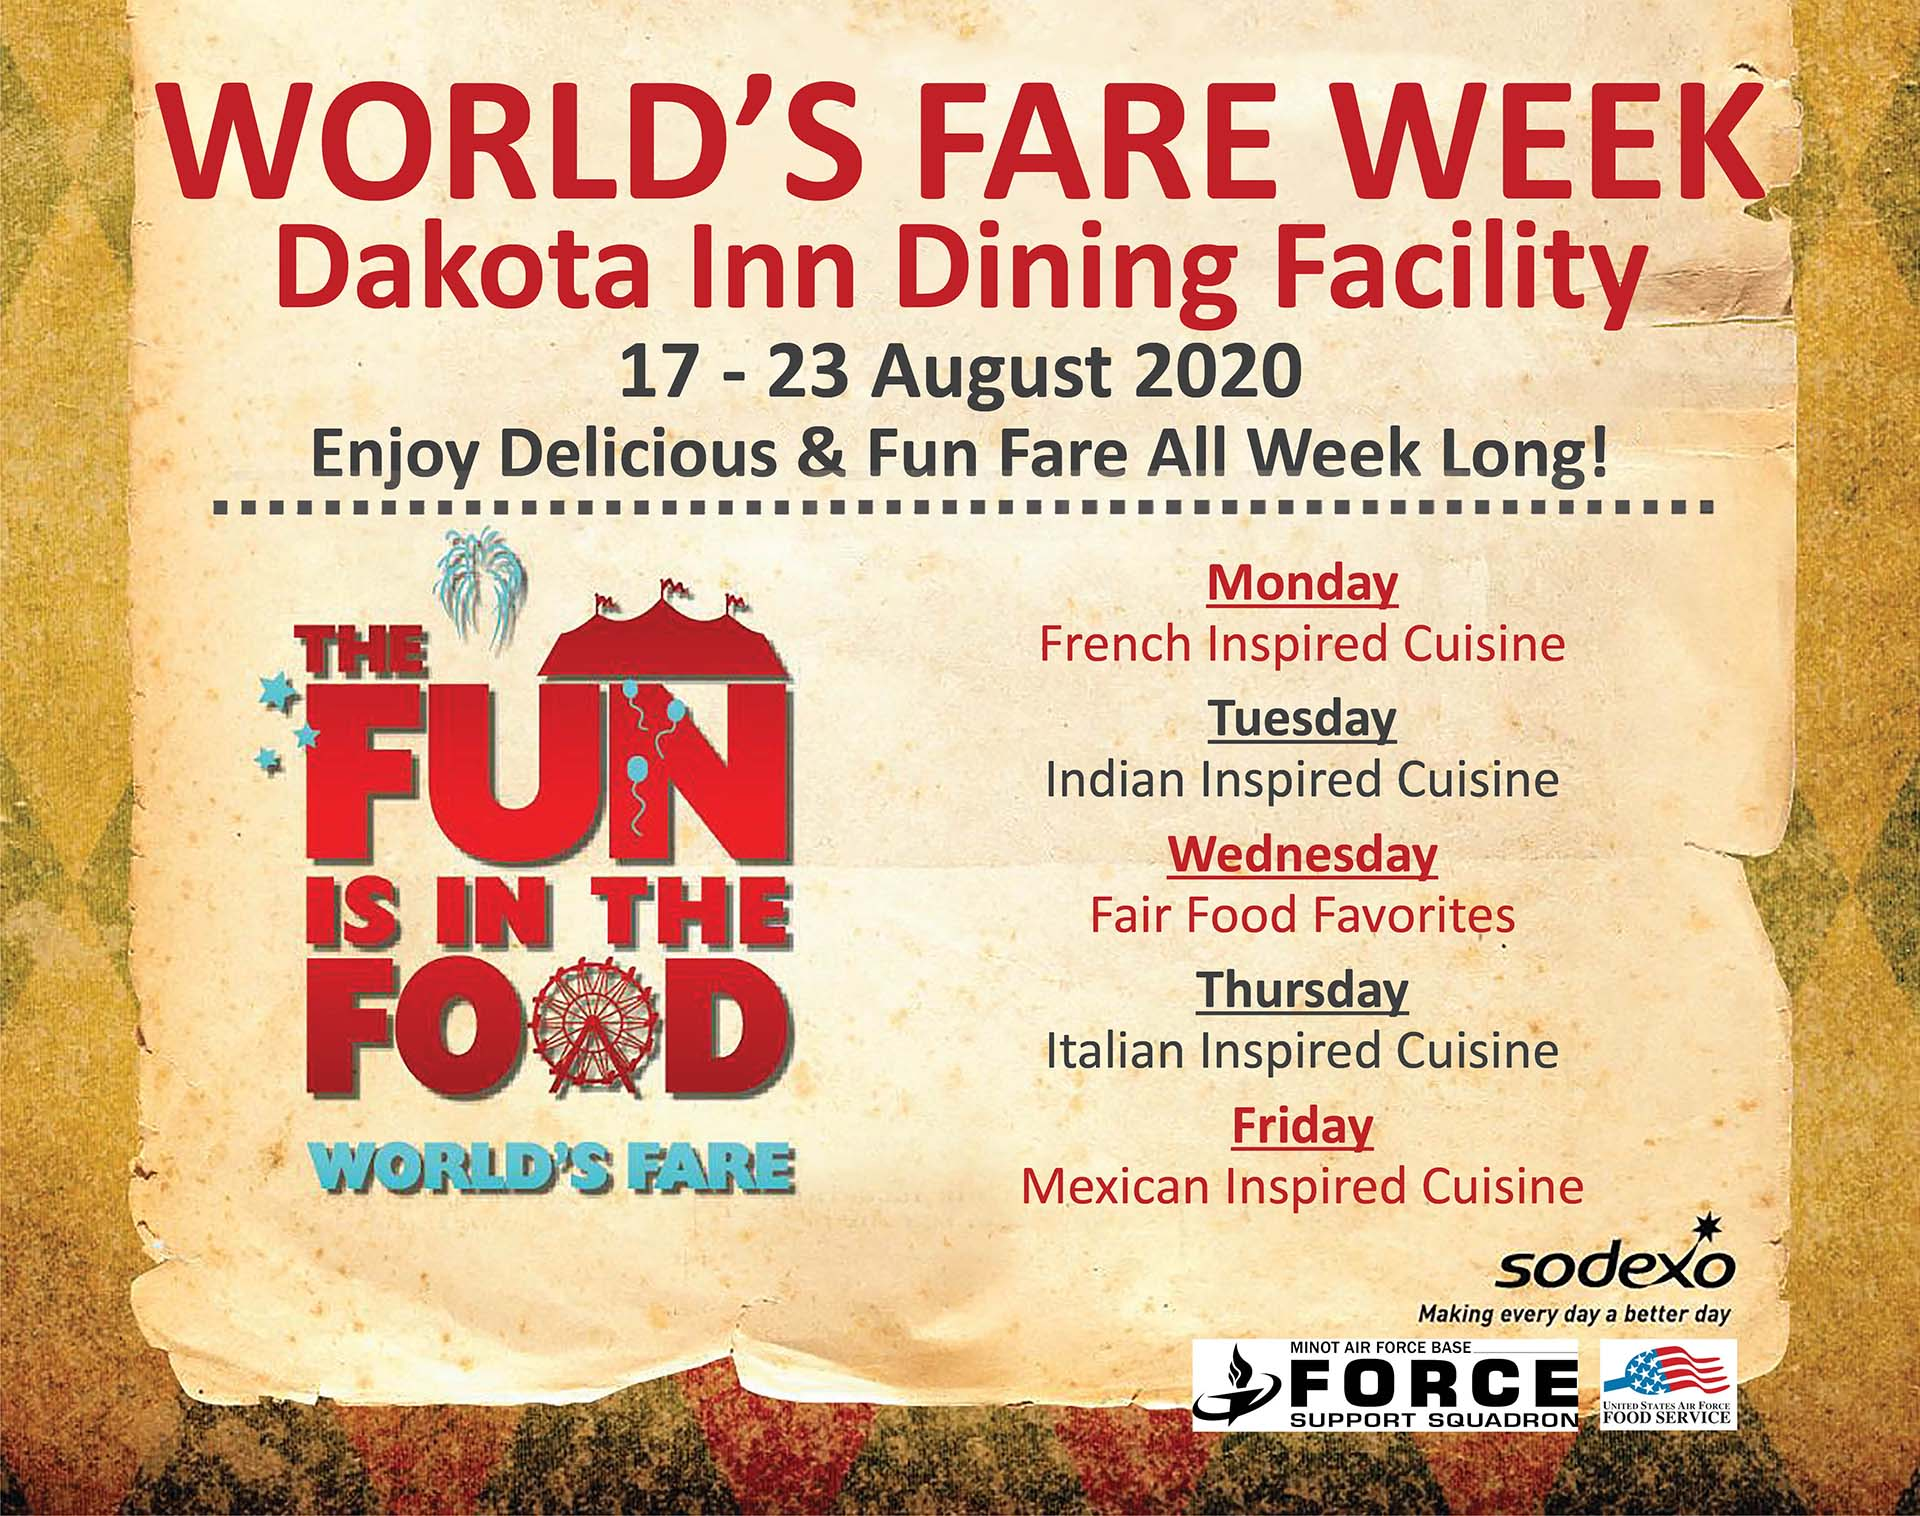 World's Fare Week